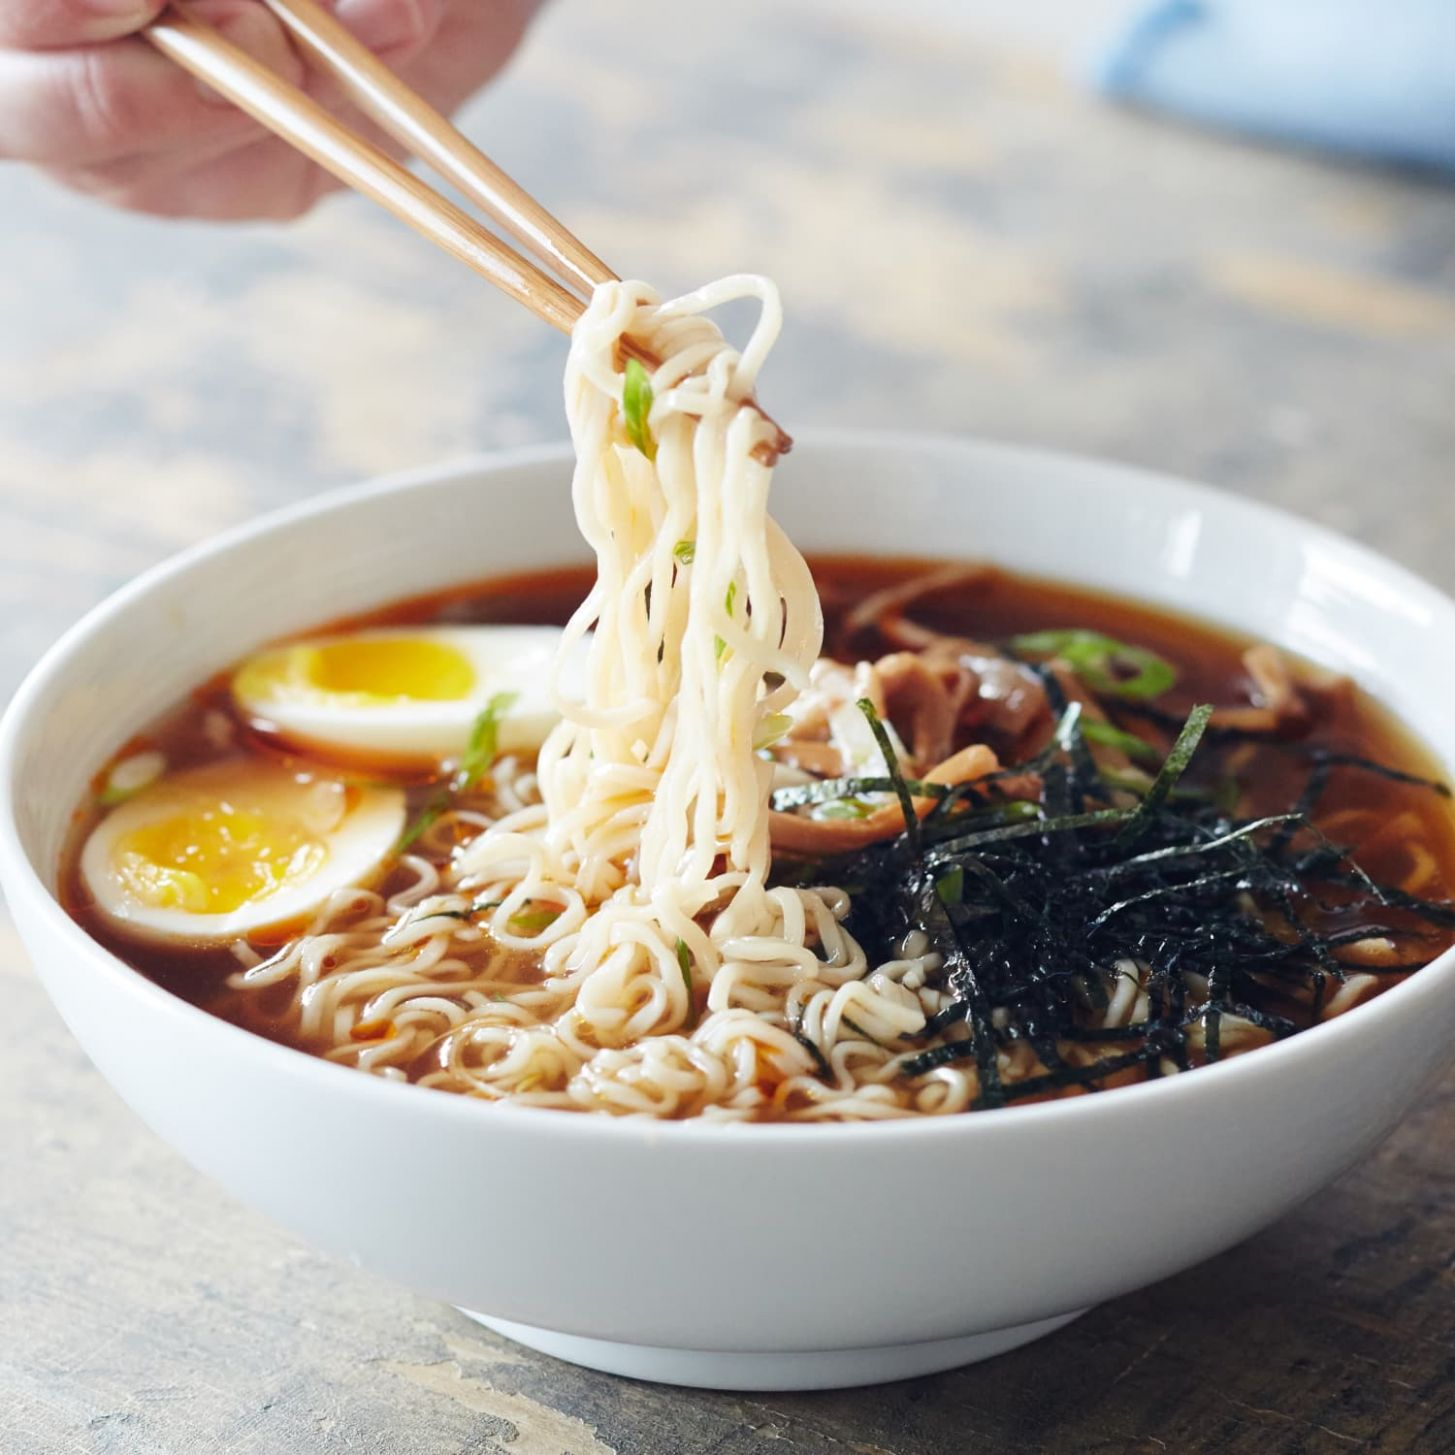 How To Make Really Good Restaurant-Style Ramen at Home - Recipes Ramen Soup